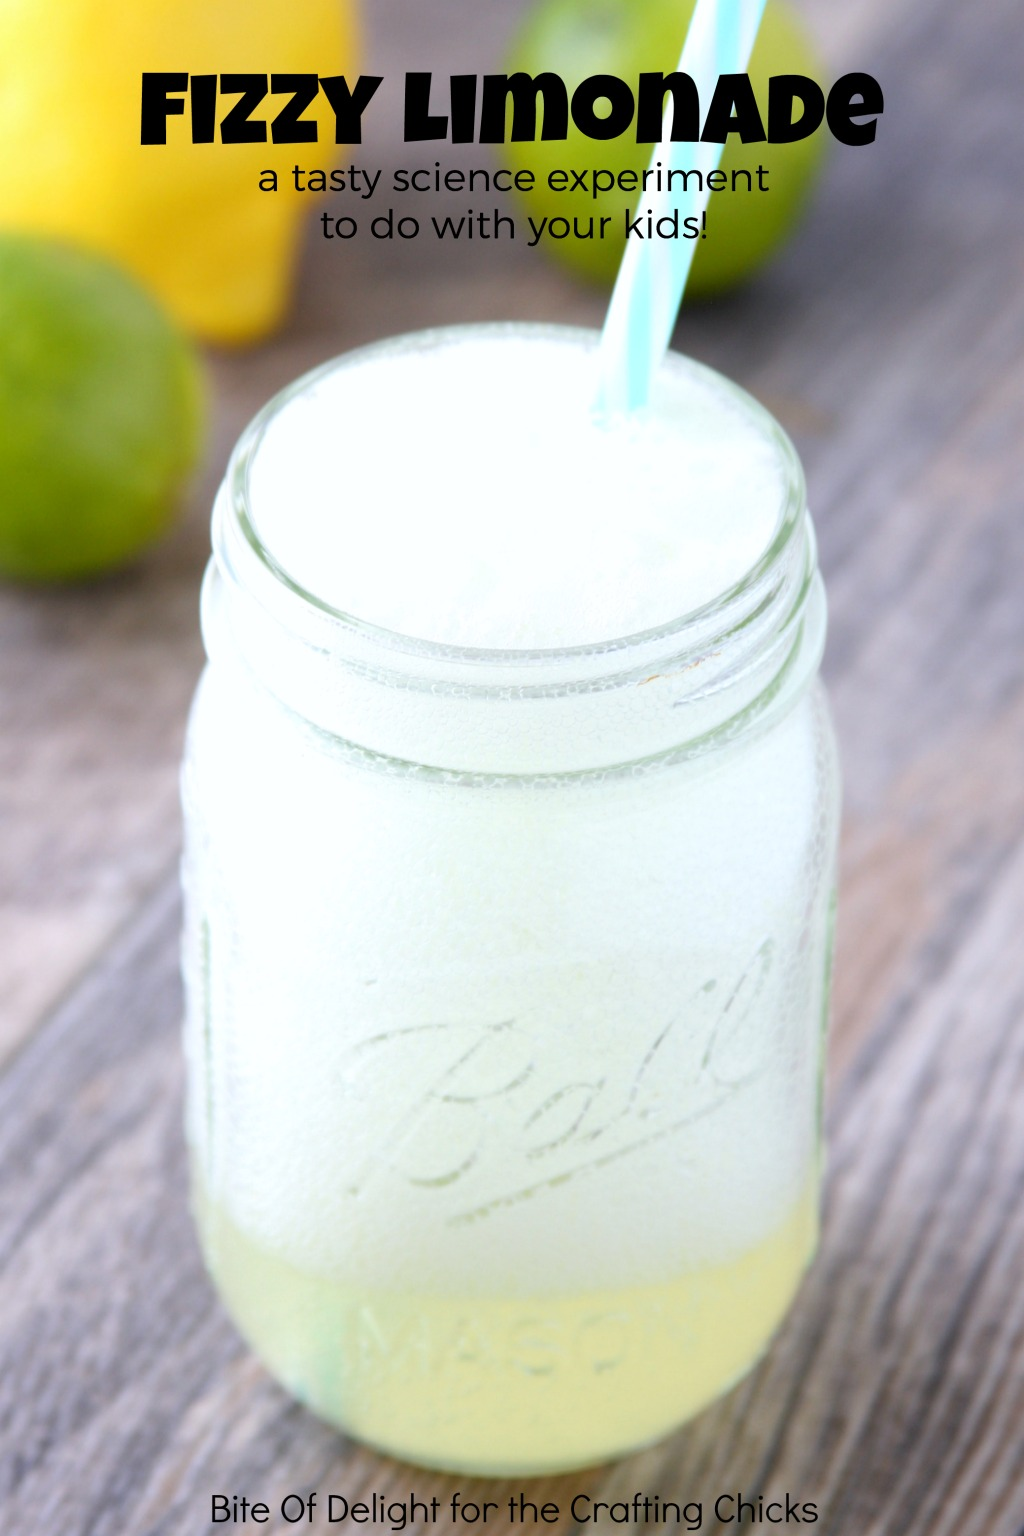 Fizzy Limonade is a fun science experiment that perfect for kids!